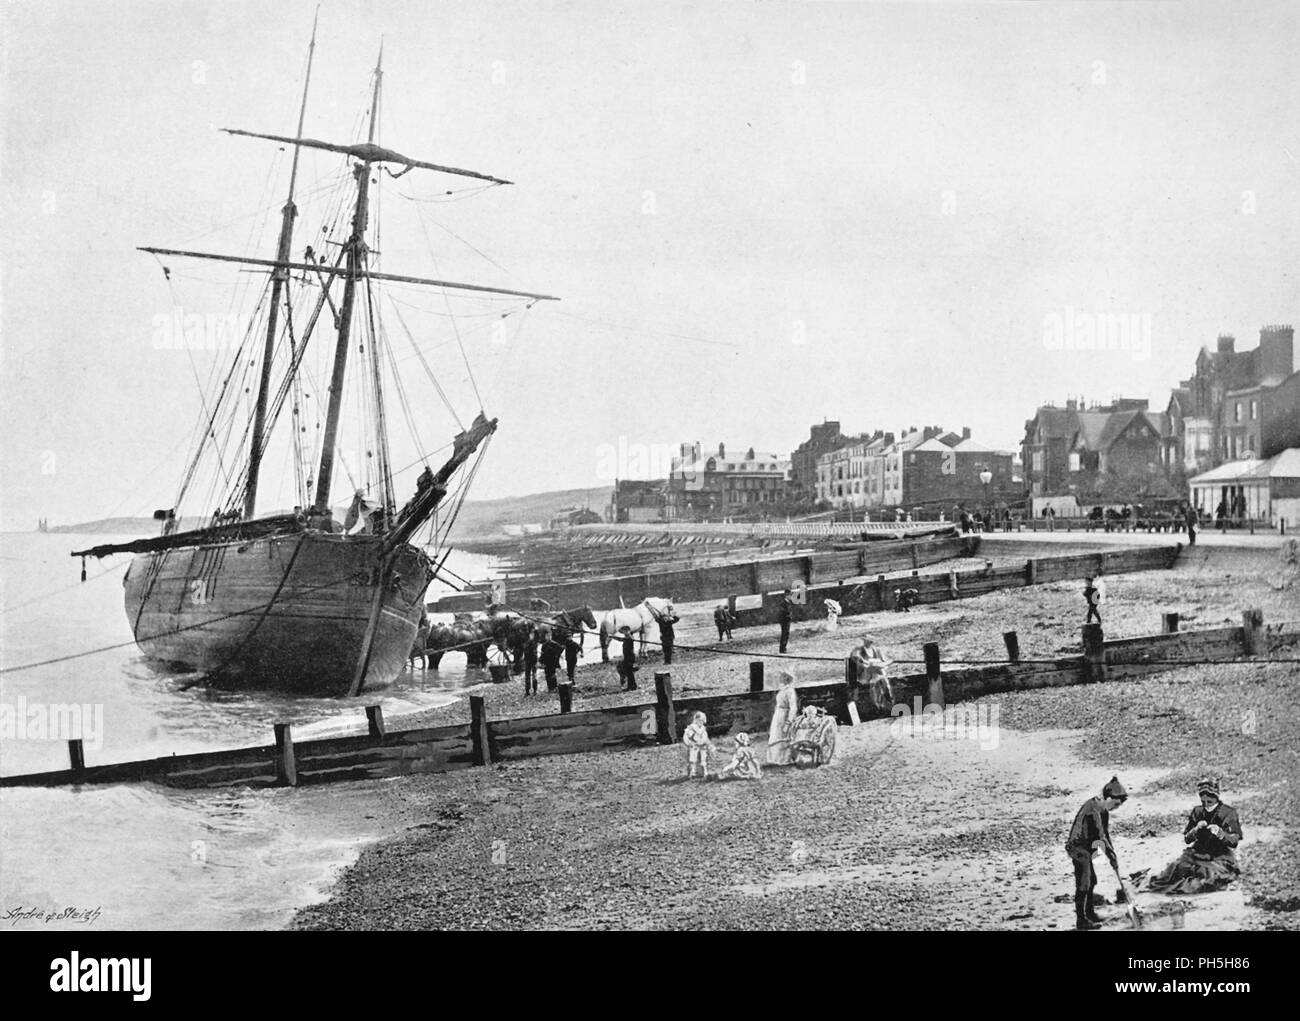 'Herne Bay', c1896. From Pictorial England and Wales. [Cassell and Company, Limited, London, Paris & Melbourne, c1896] - Stock Image